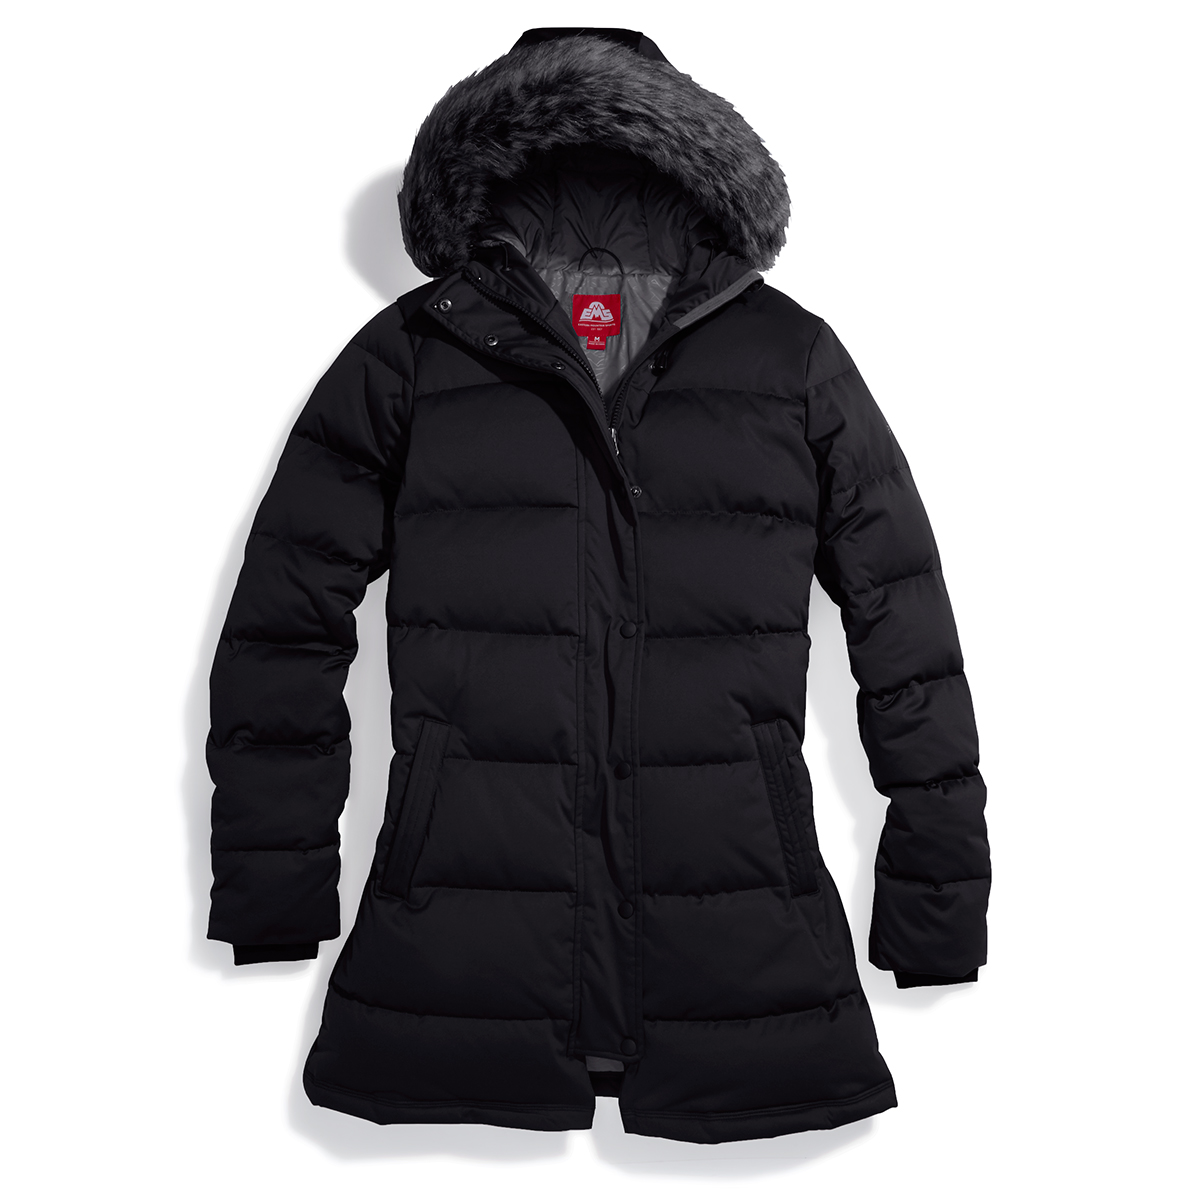 Ems Women's Klatawa Down Parka - Black, XL